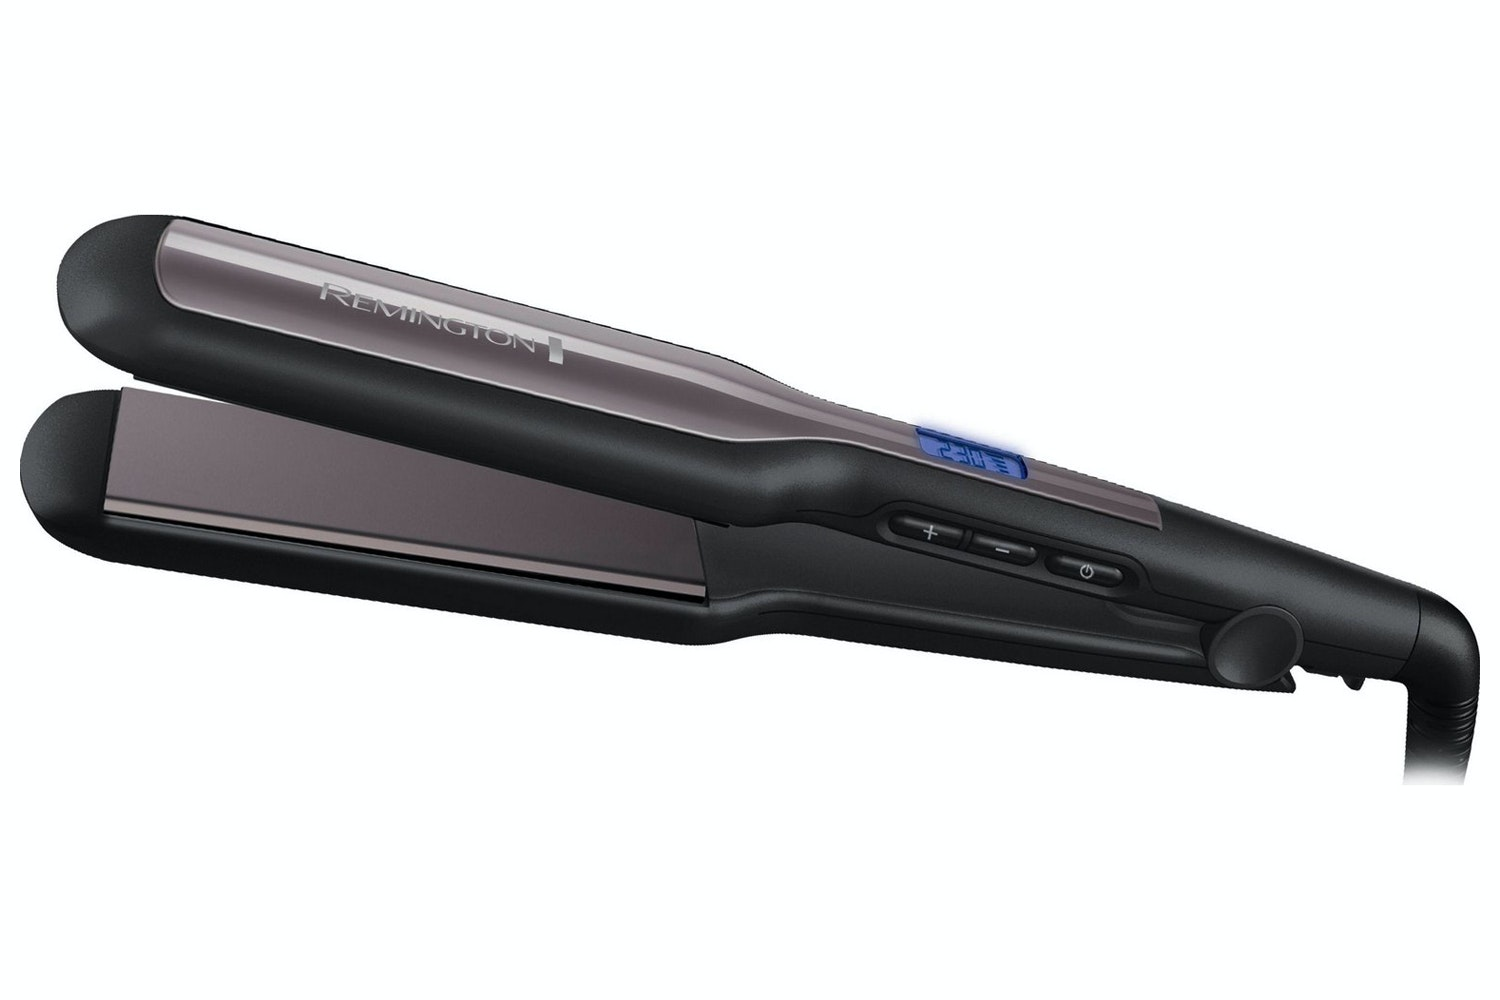 Remington Pro Ceramic Extra Hair Straightener | S5525